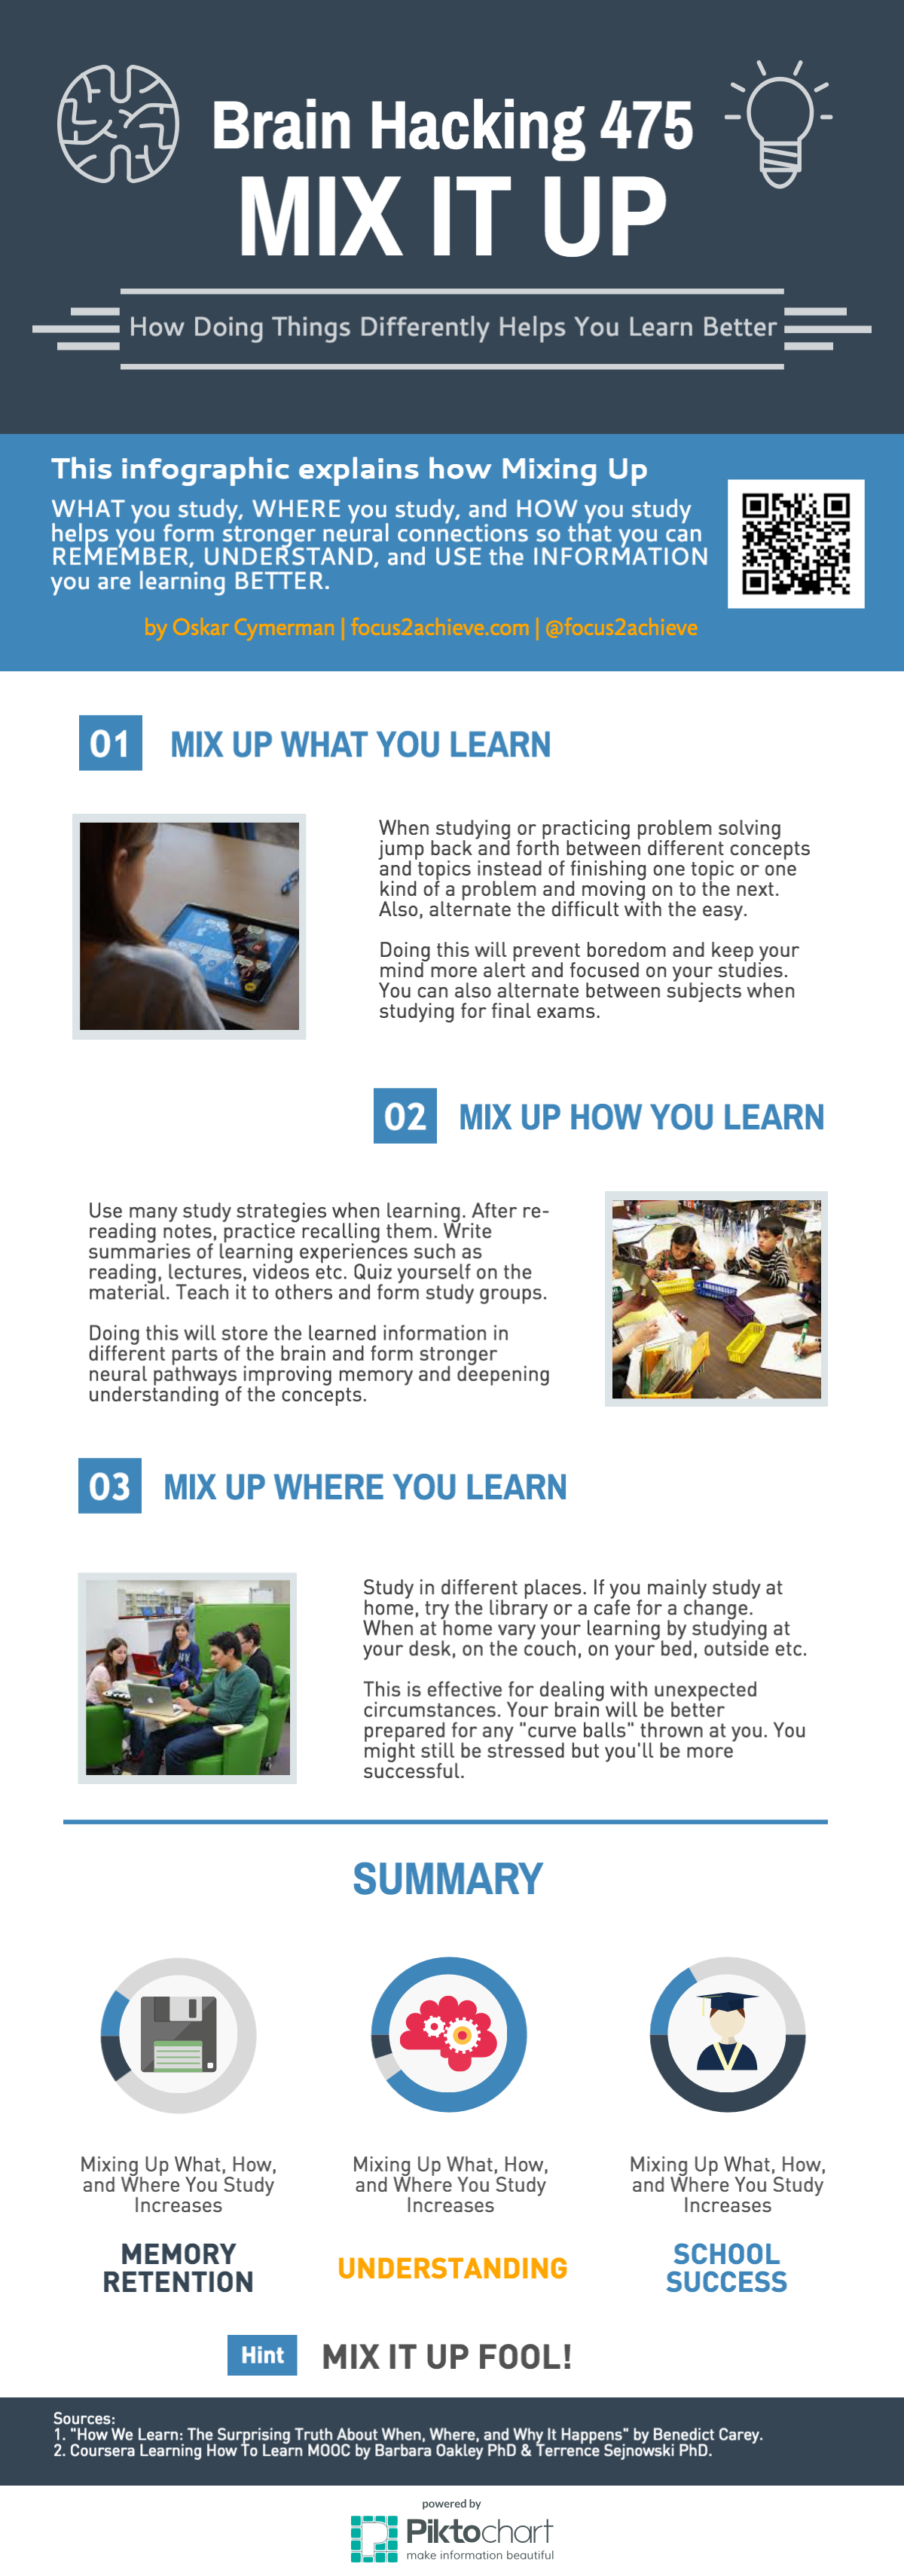 Mix It Up! The What, How, and Where of Learning